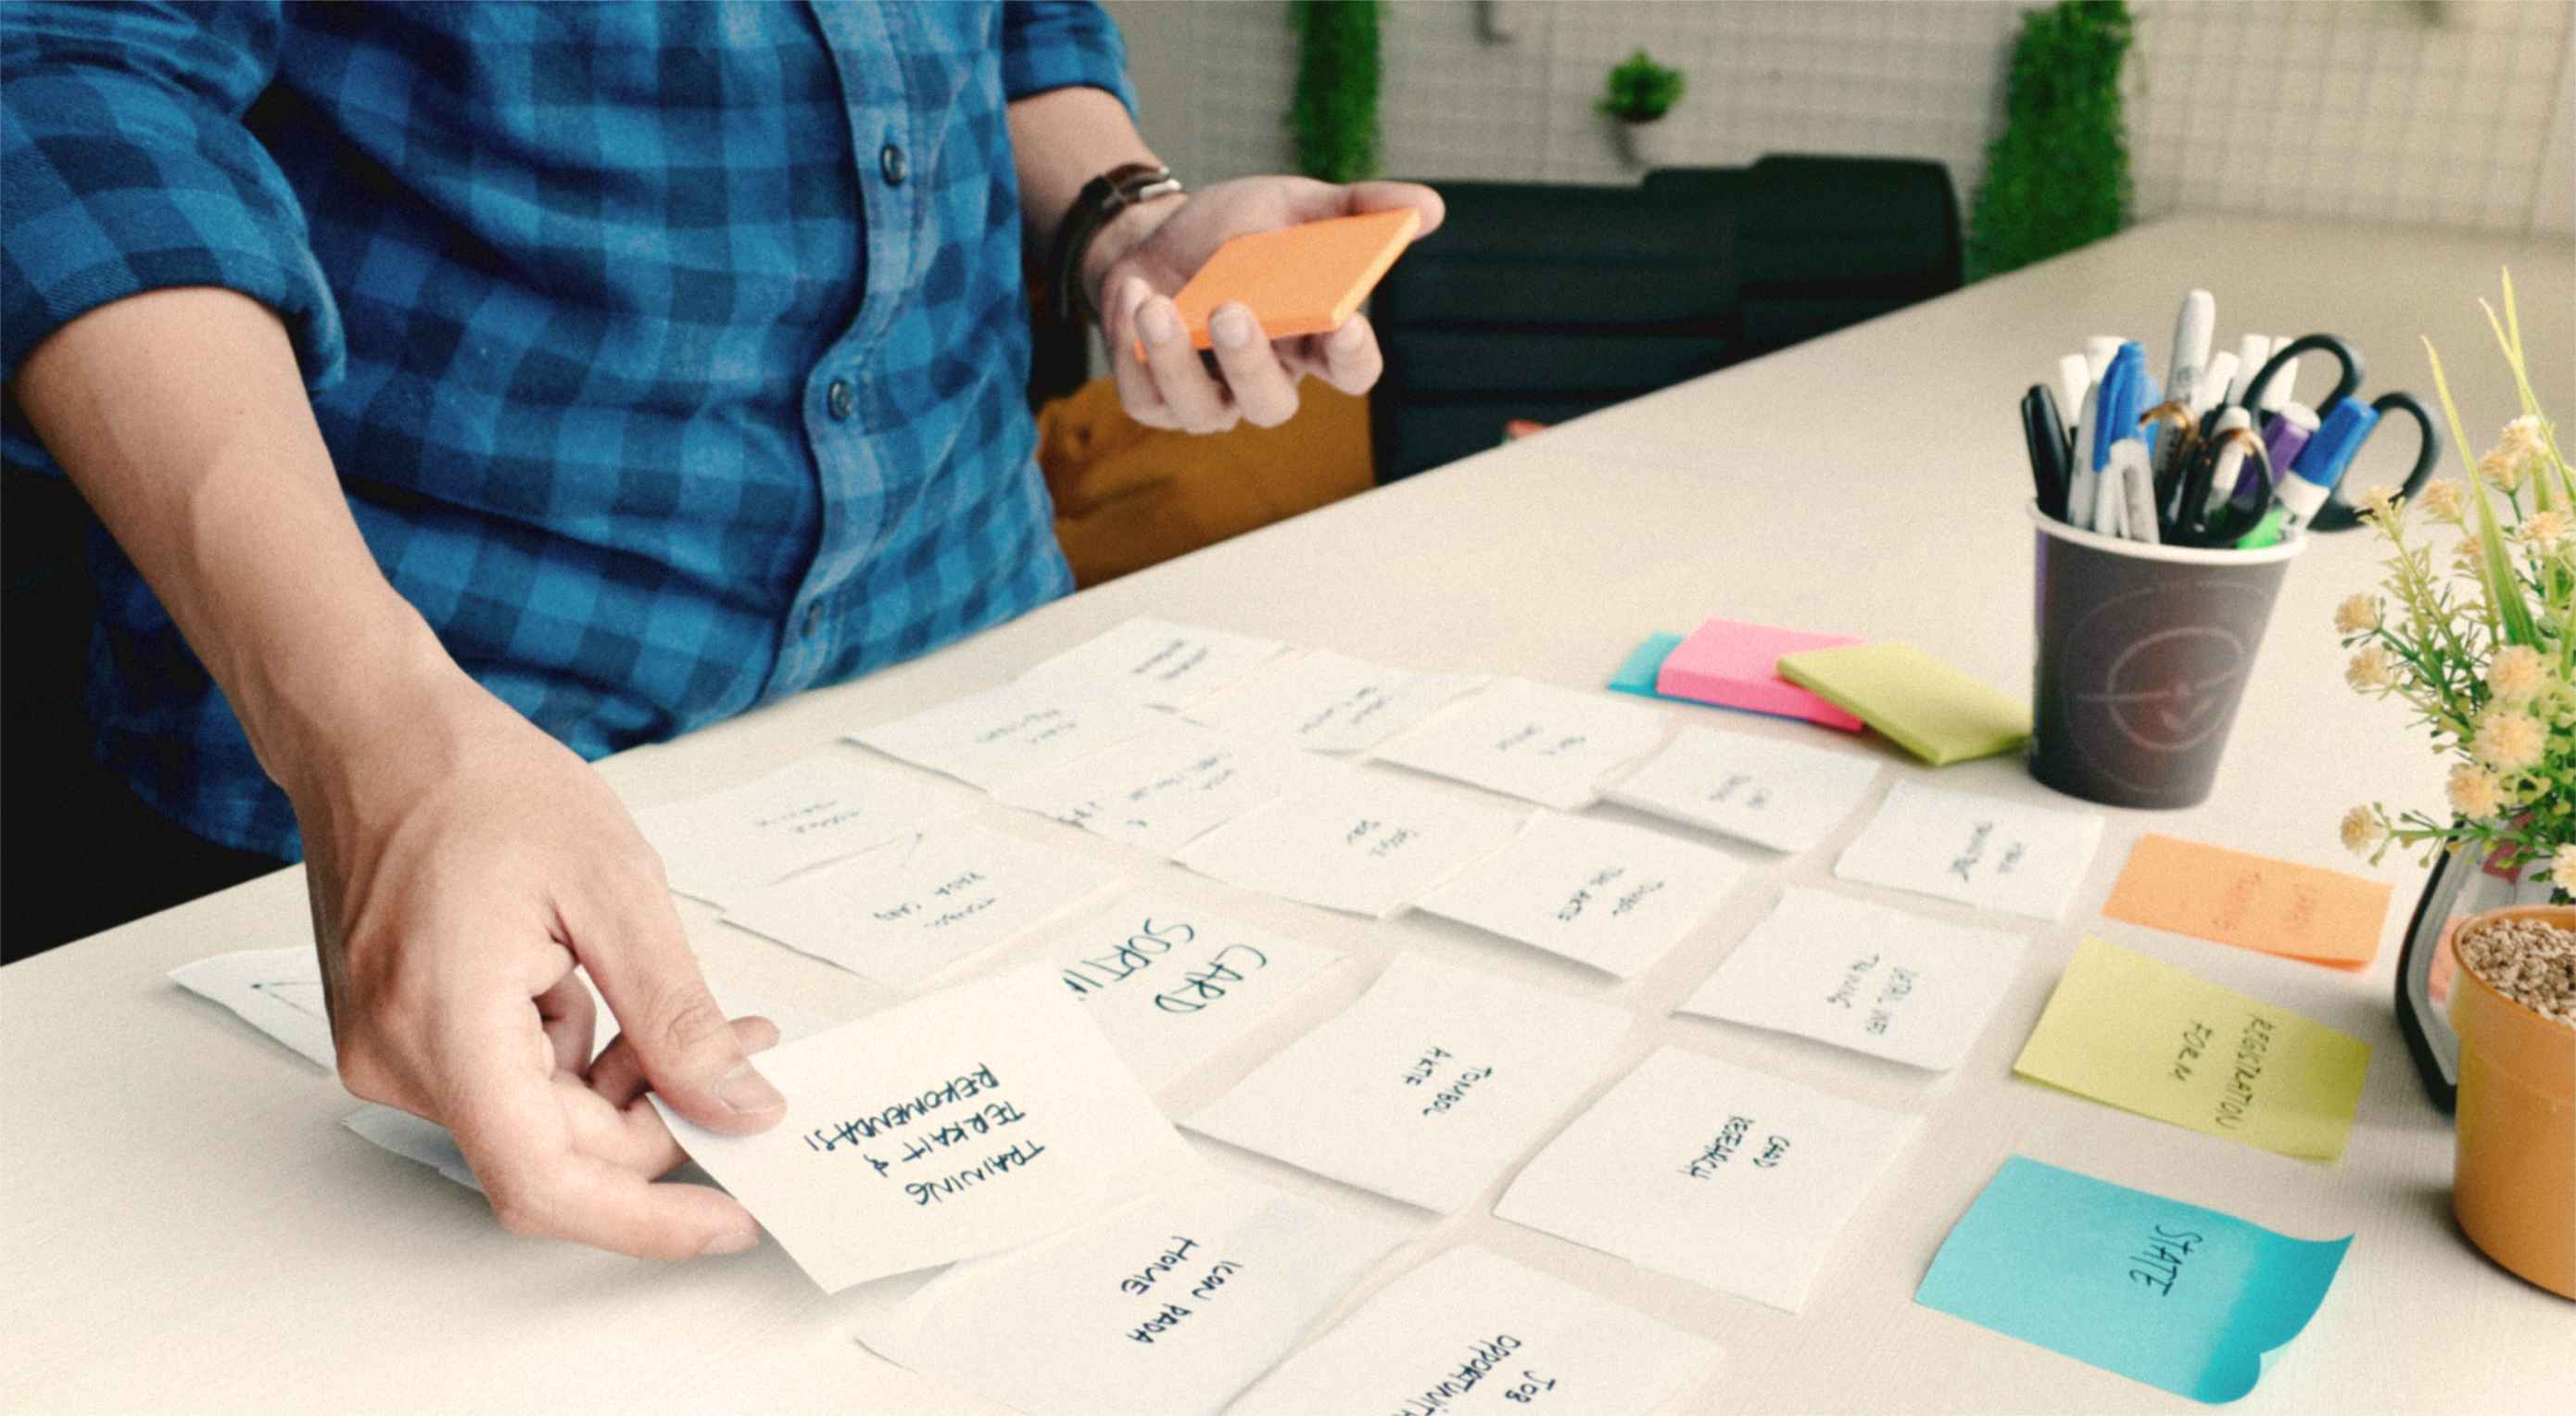 How To Benefit From Mental Models in UX Design